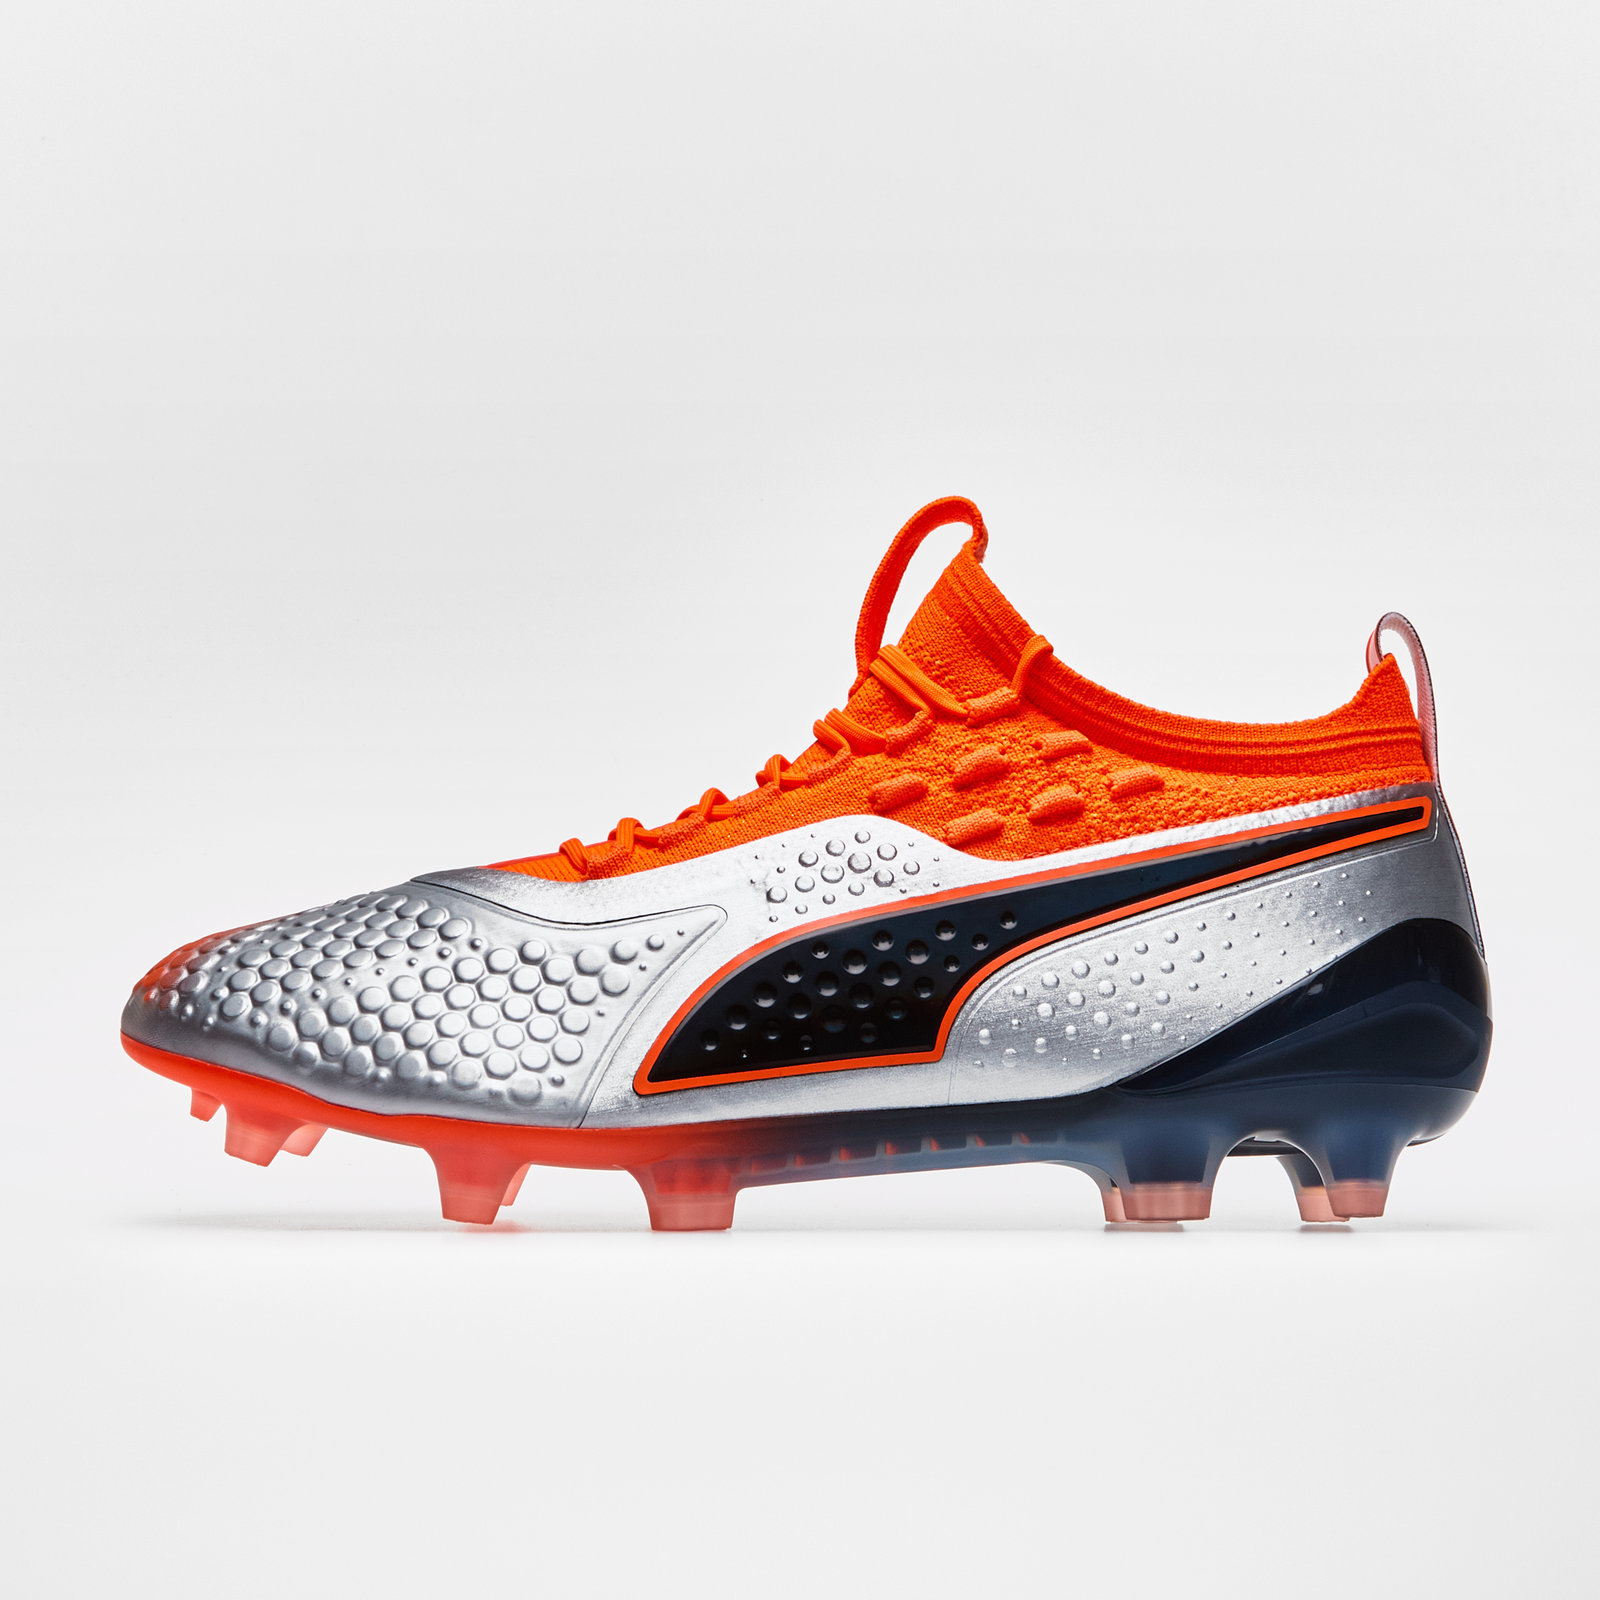 Image of One 1 FG/AG Football Boots